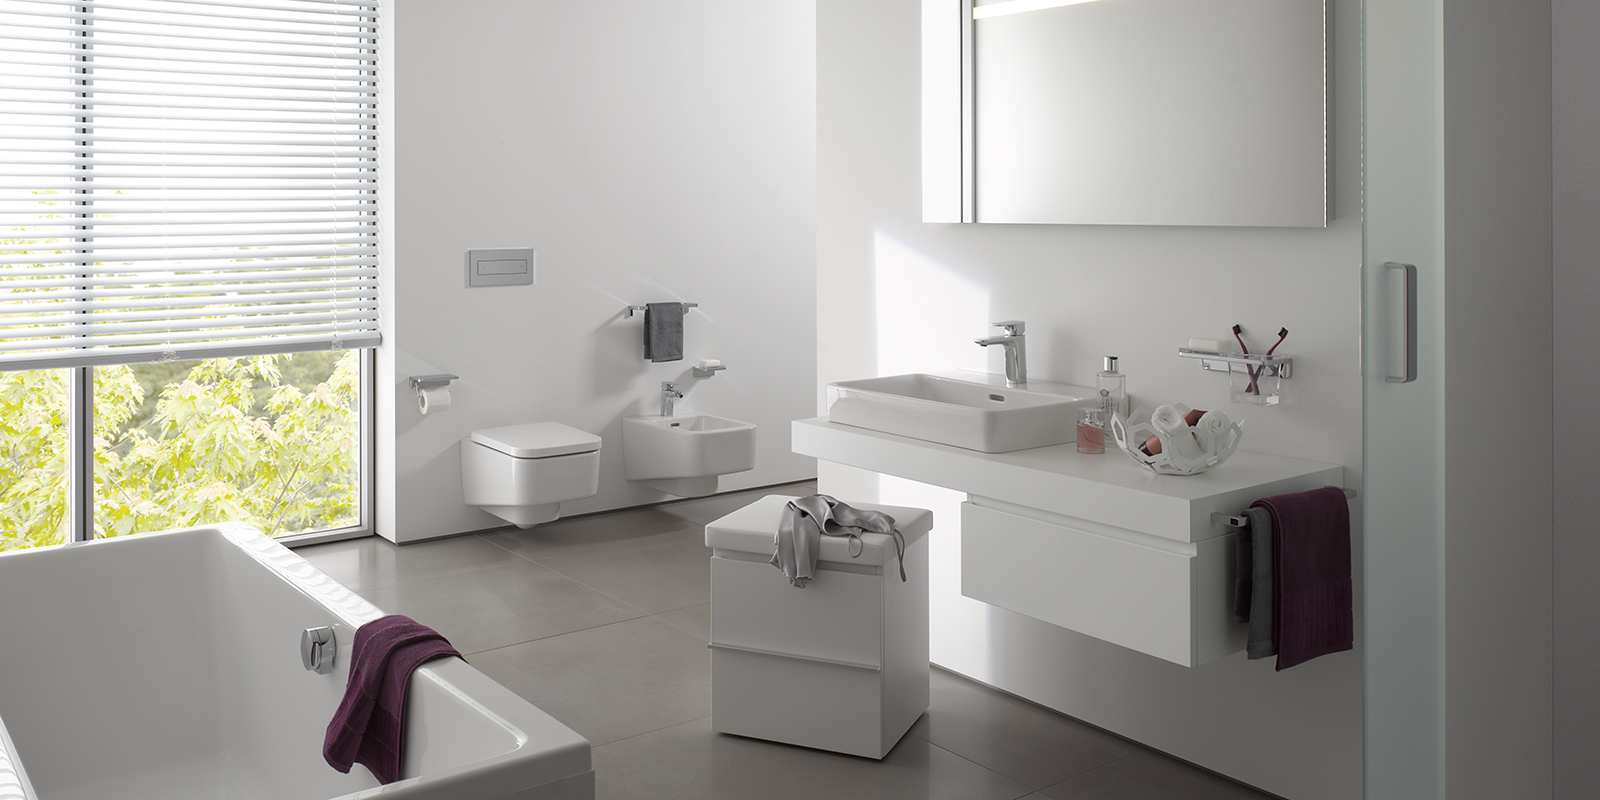 Laufen Bathrooms Ag Vetica Group Business Evolution Strategy with regard to measurements 1600 X 800